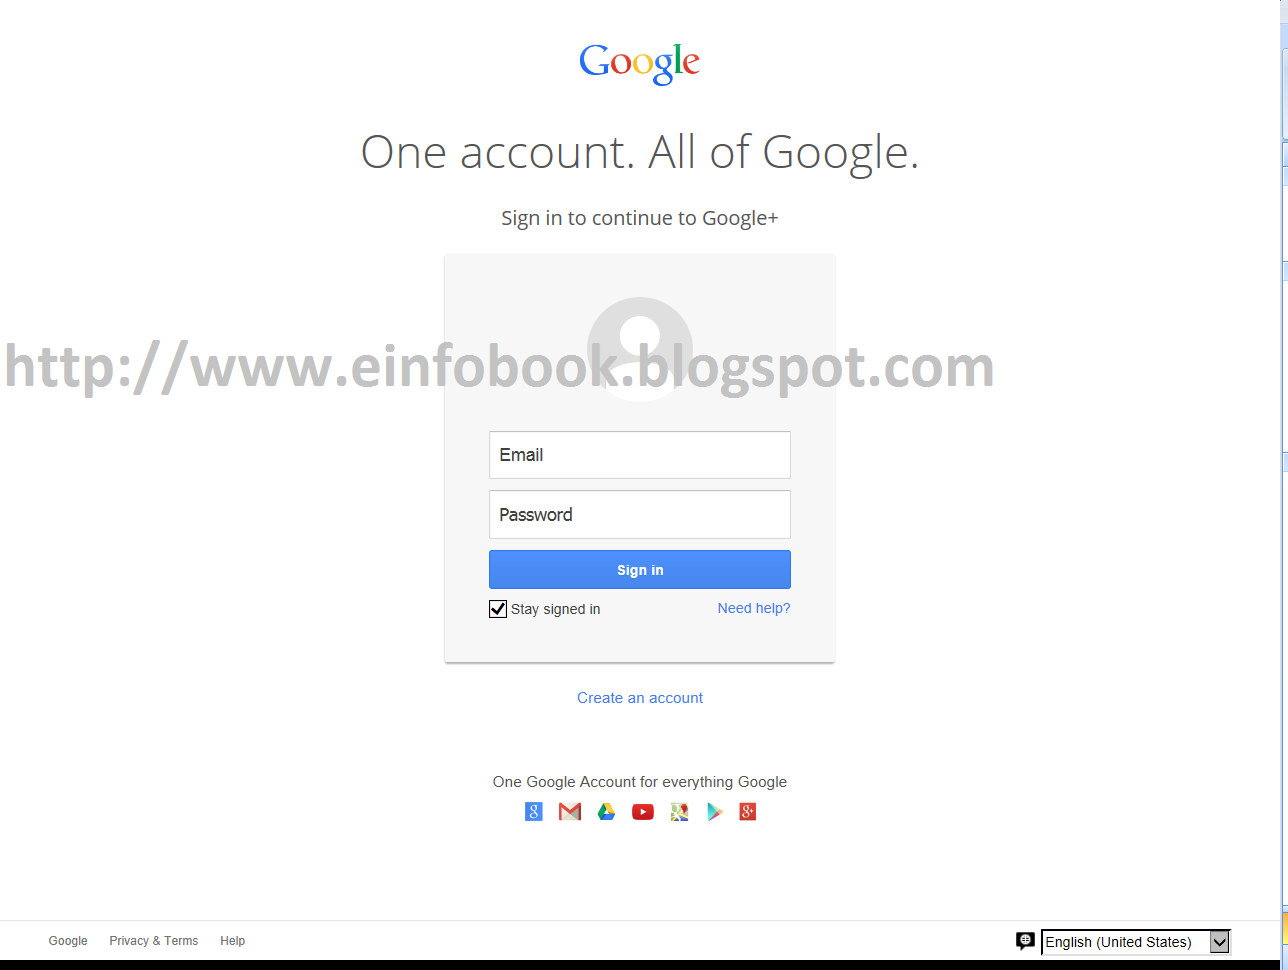 E info Book- Google Plus login page